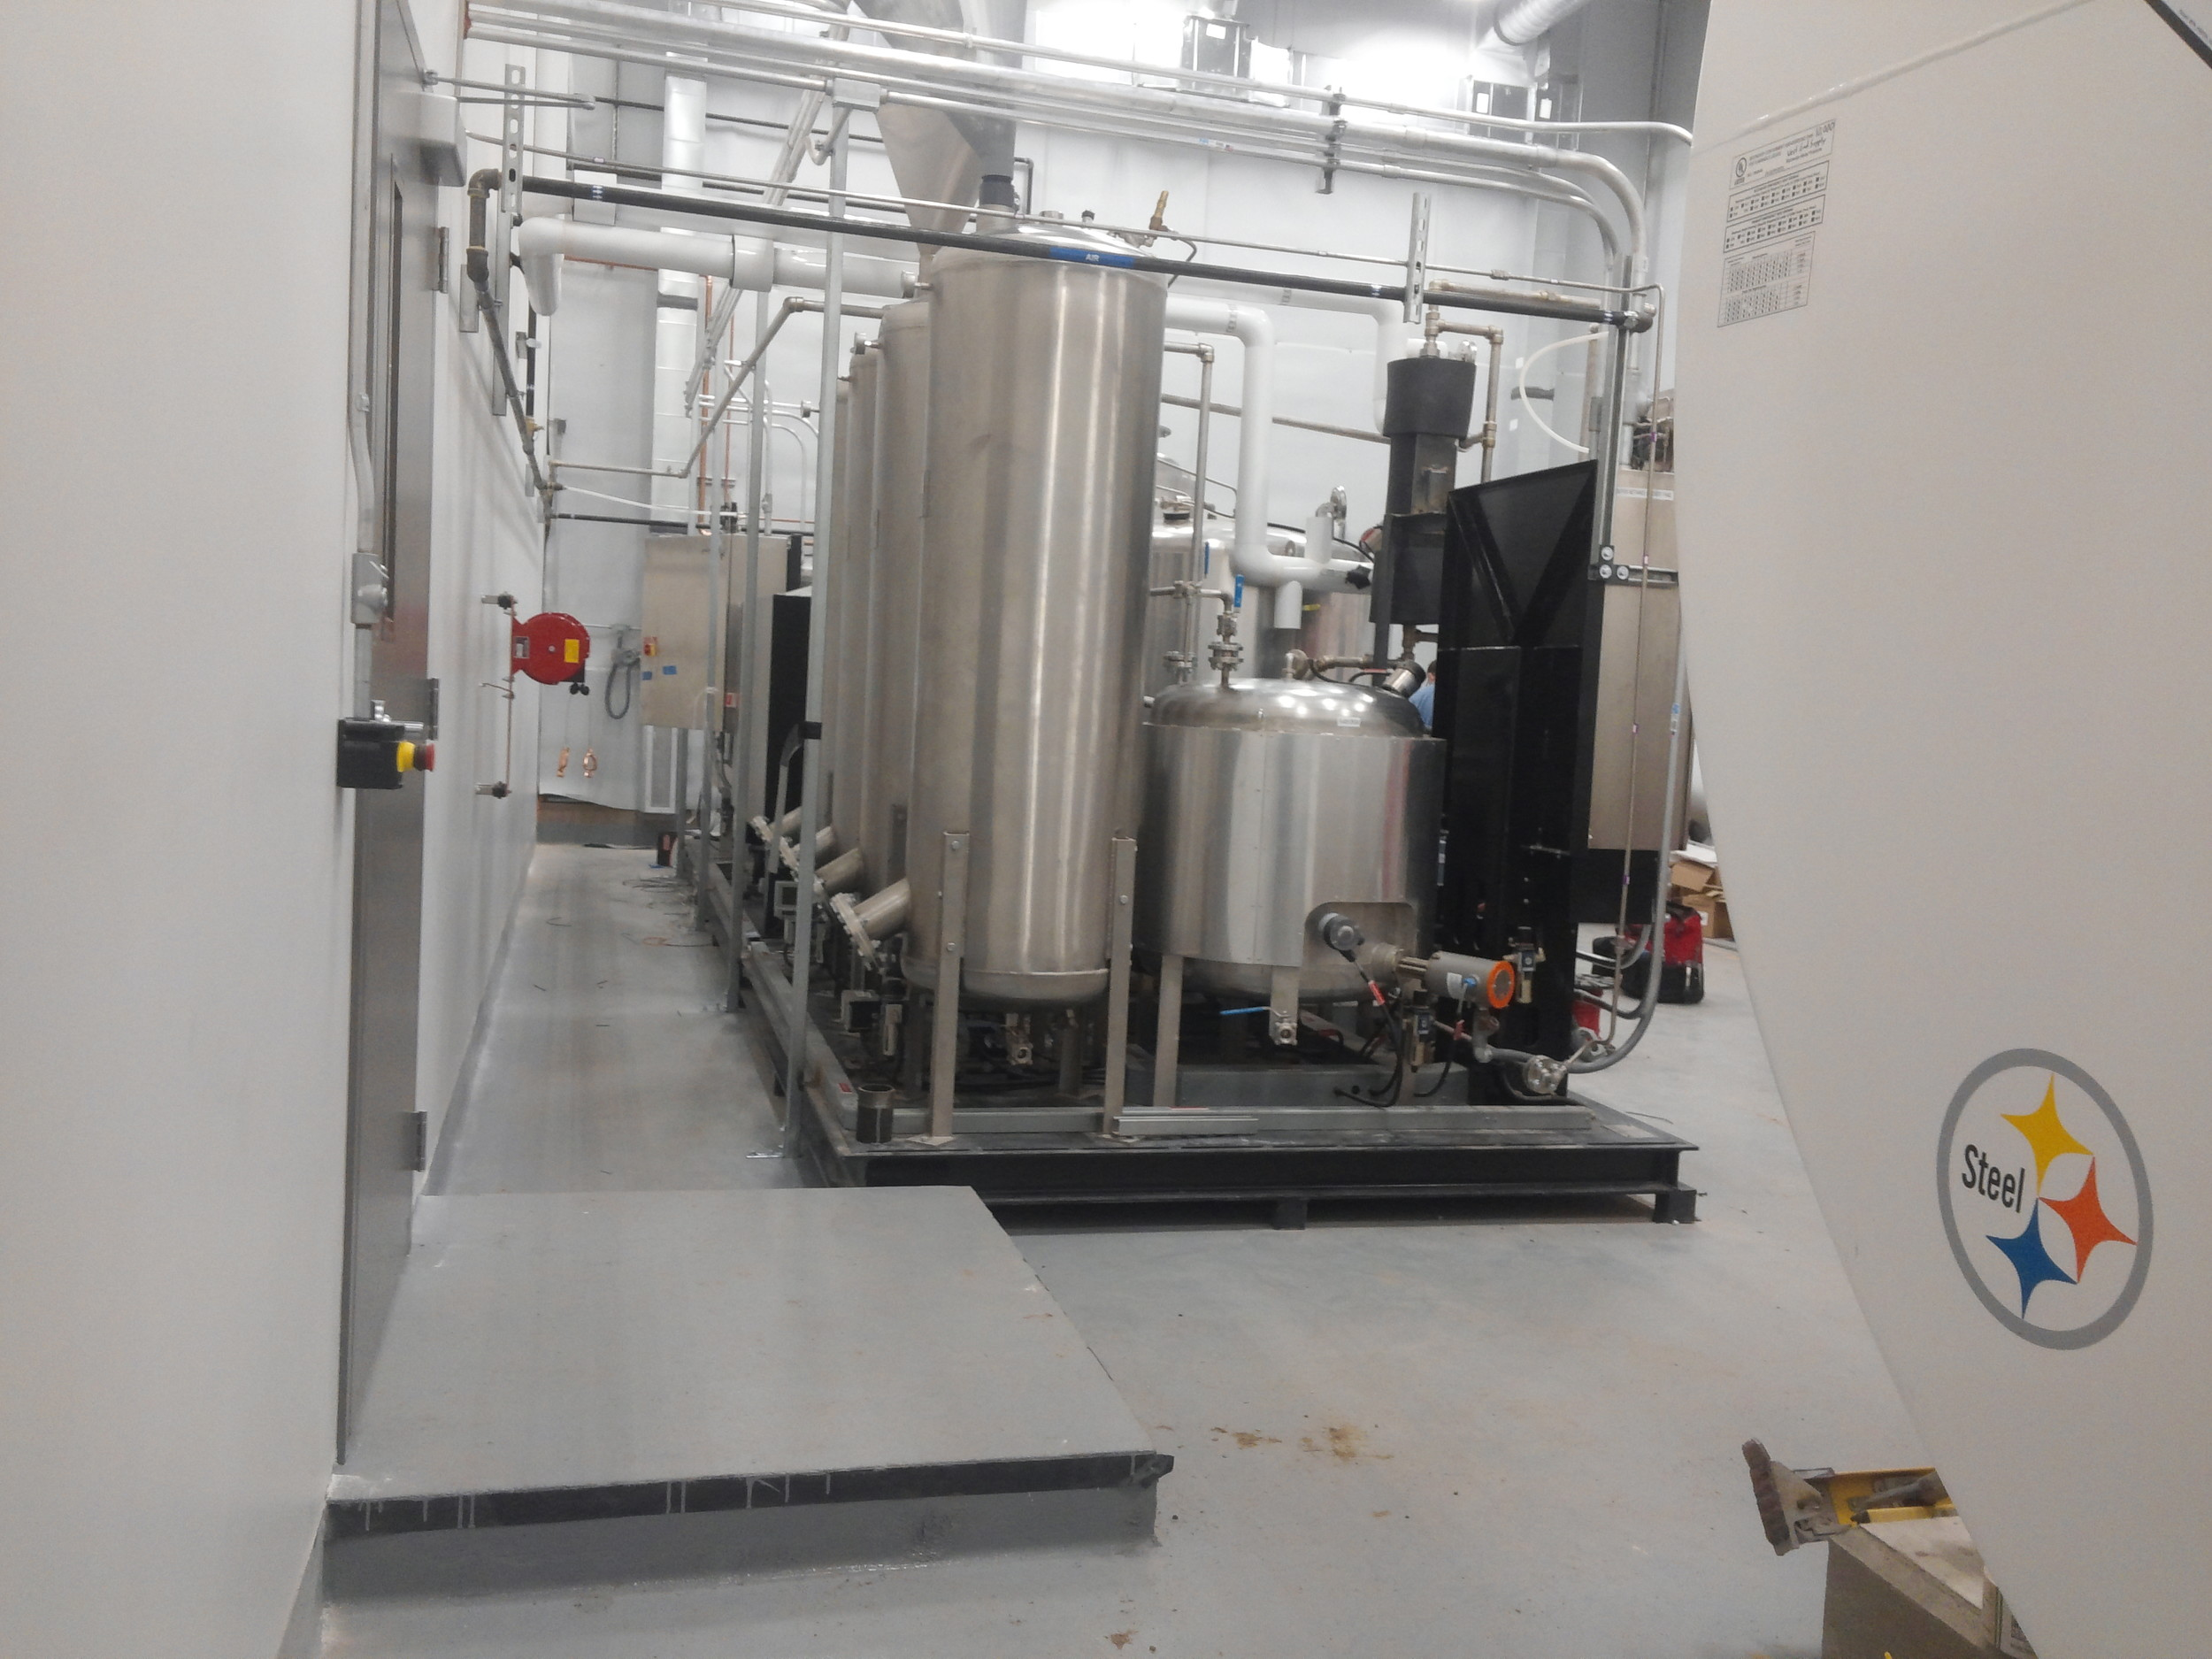 NB processor and methylate tank in new processing room.jpg